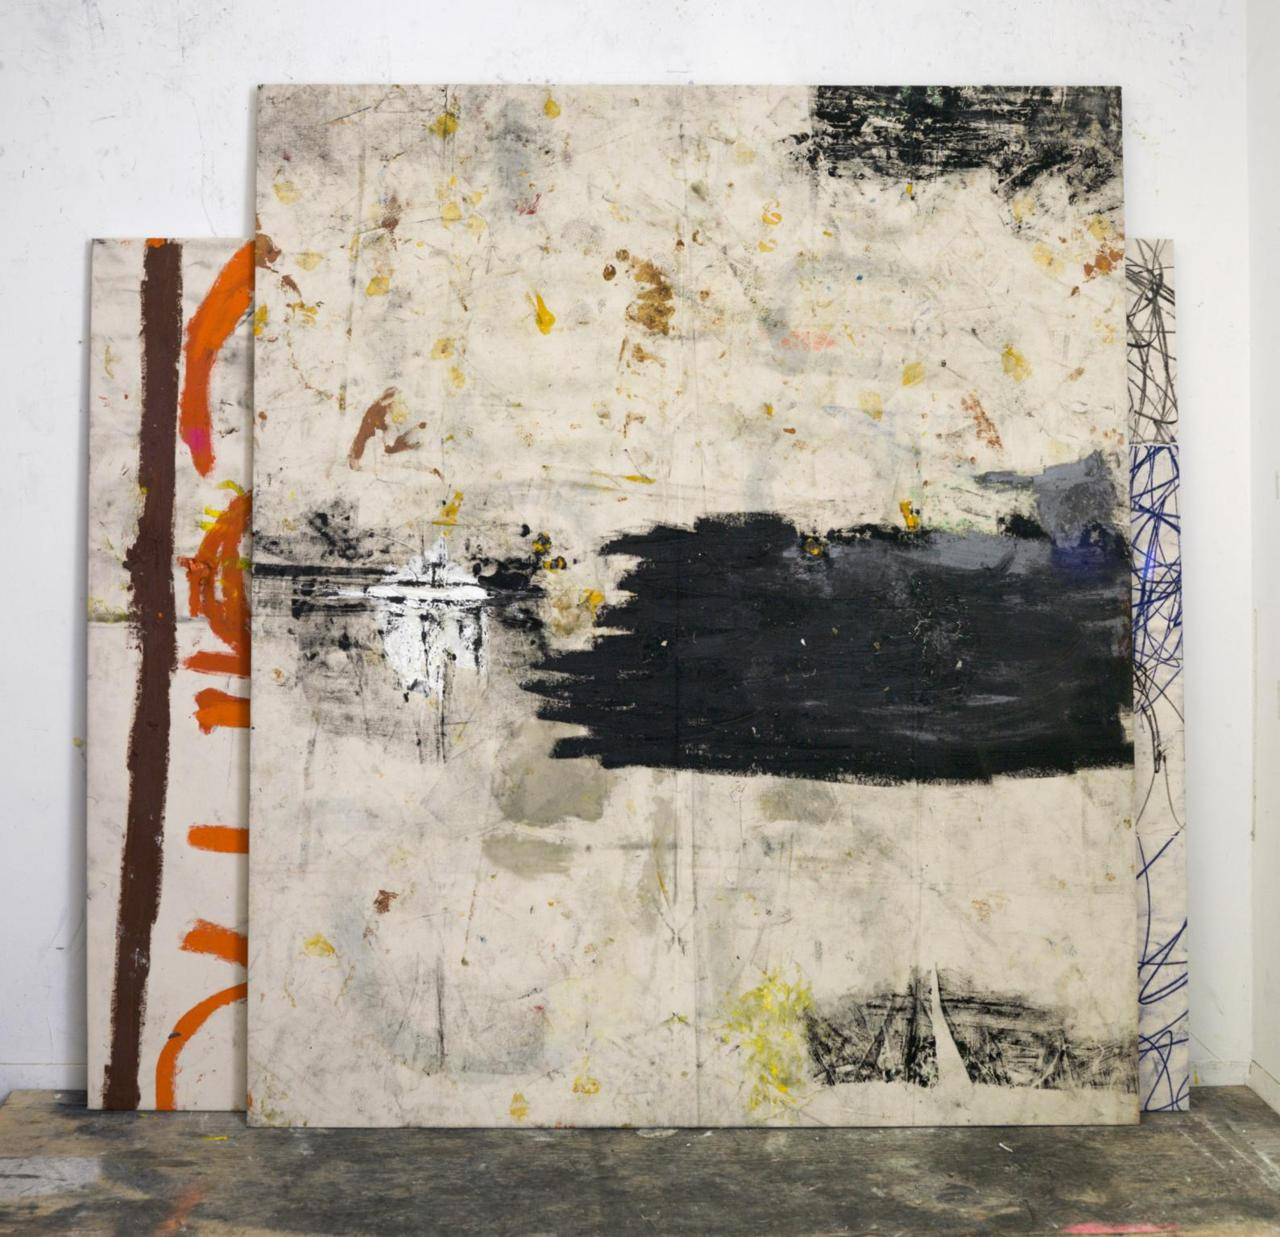 Oscar Murillo, Untitled (stack paintings), 2013